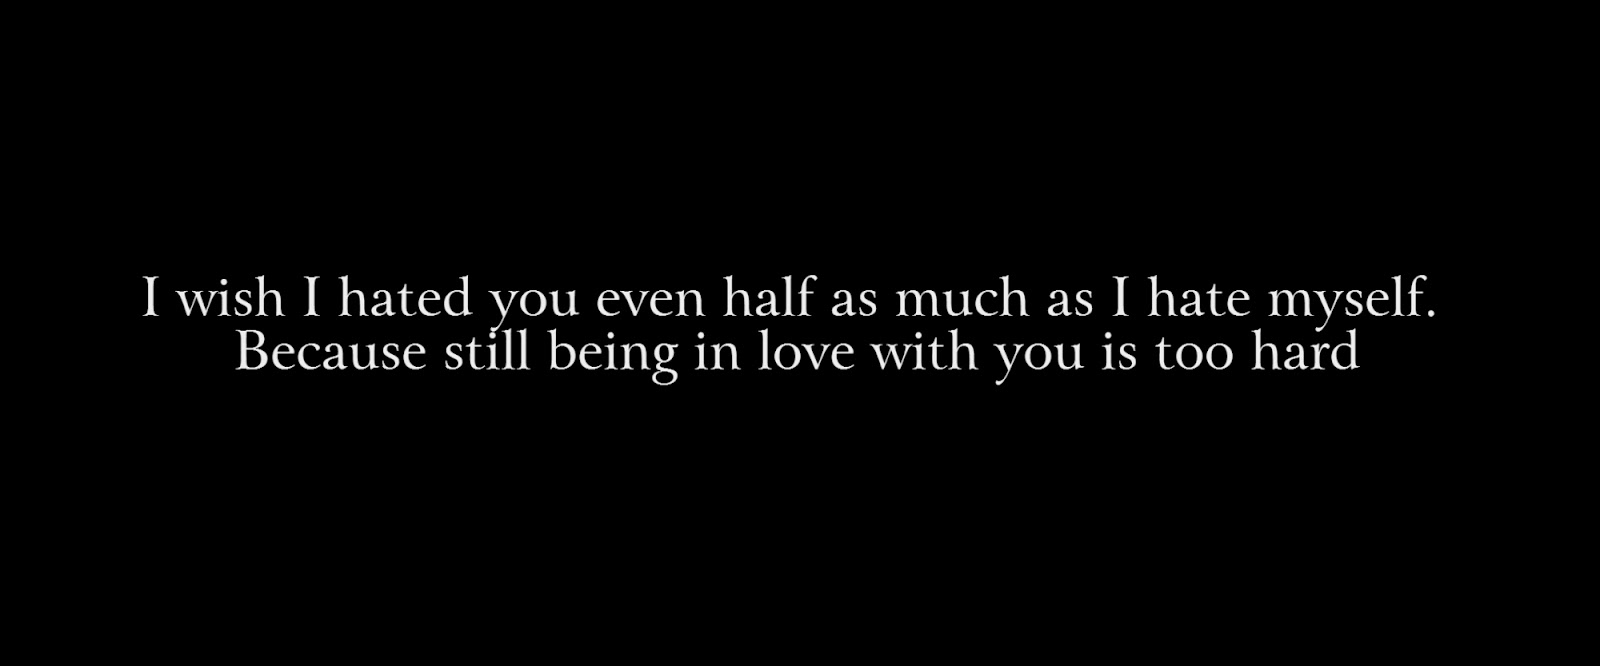 I wish I hated you even half as much as I hate myself.  Because still being in love with you is too hard